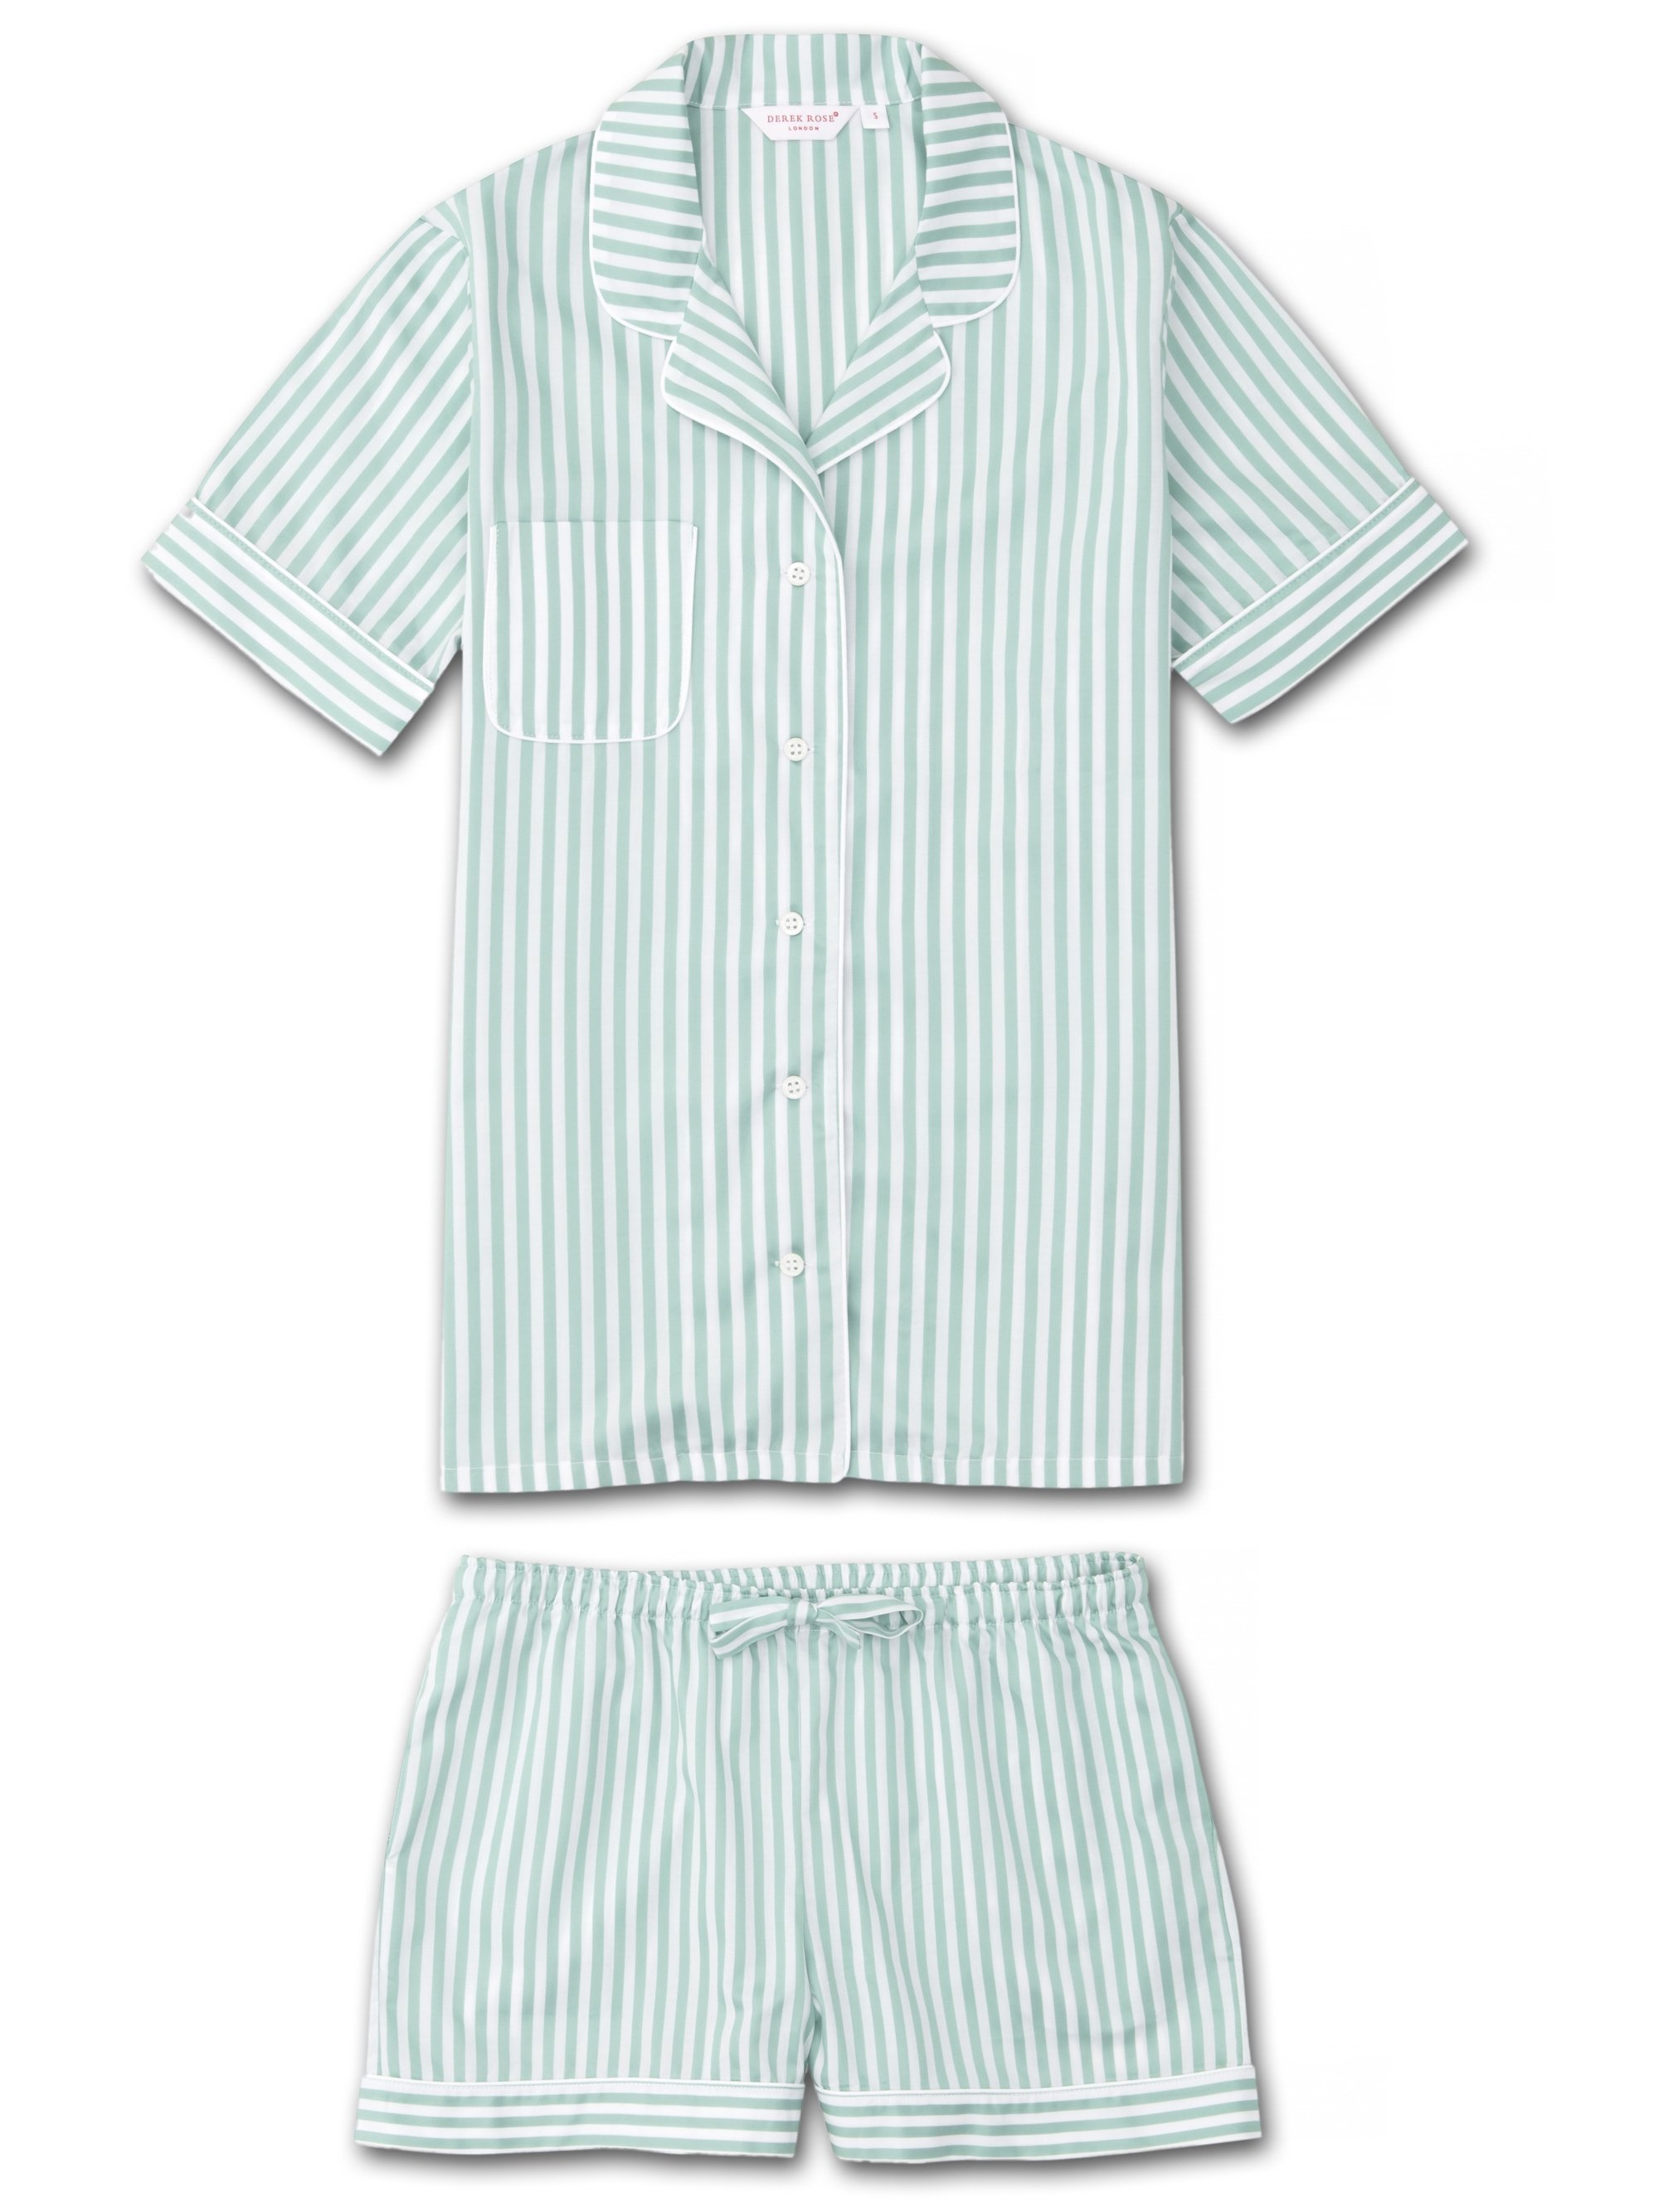 Women's Shortie Pyjamas Capri 16 Pure Cotton Green